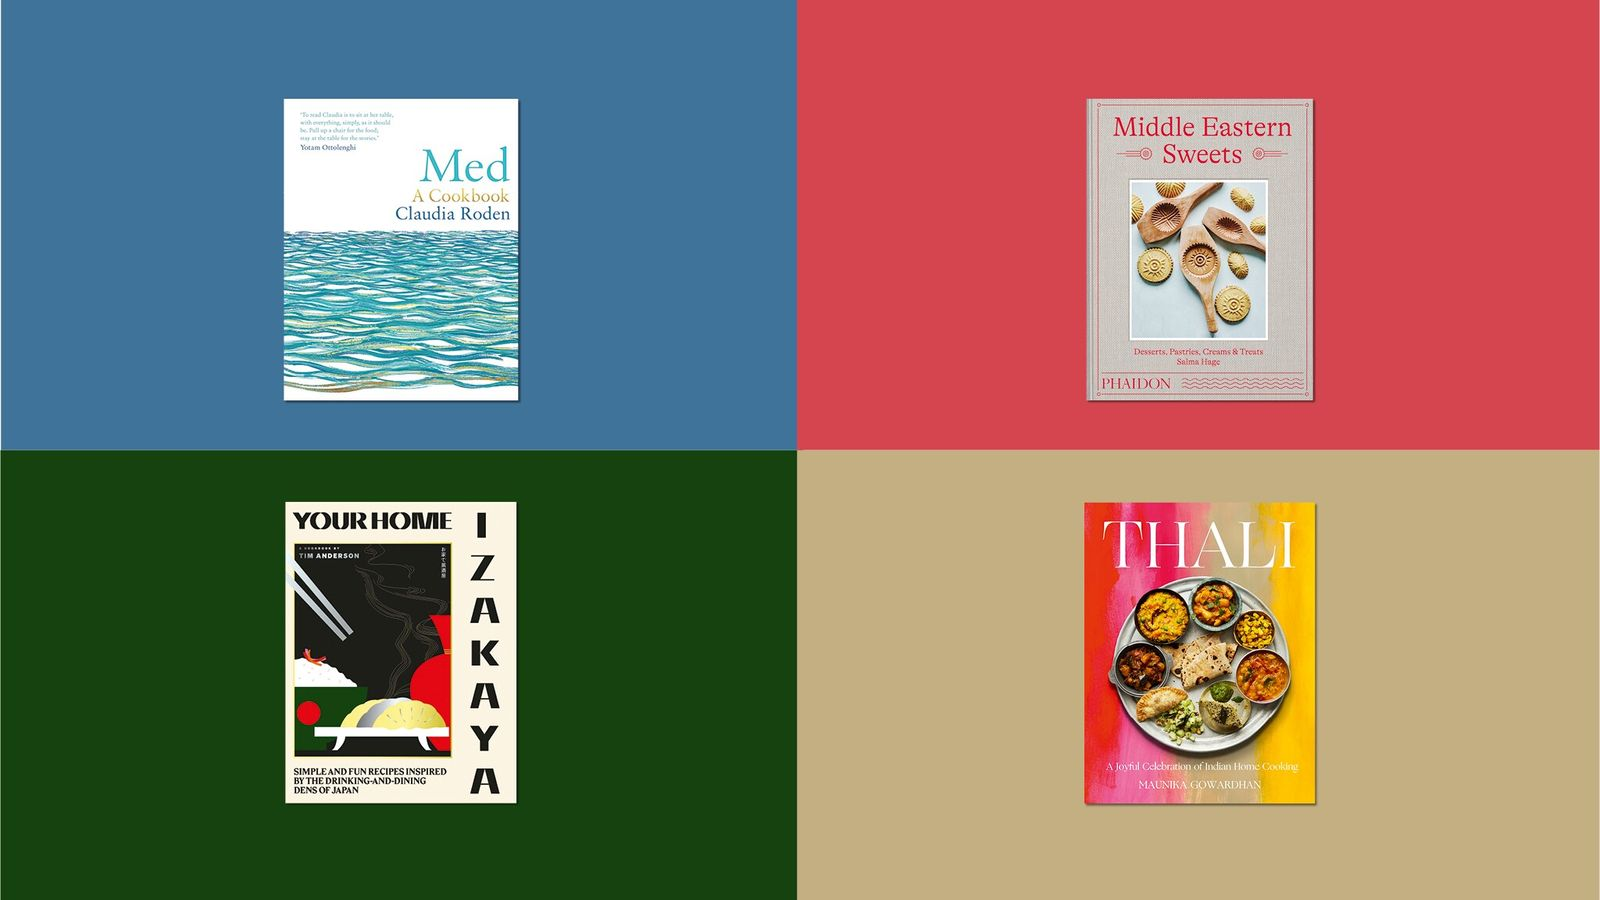 Clockwise from the top: Med: A Cookbook, by Claudia Roden; Middle Eastern Sweets: Desserts, Pastries, Creams & Treats, ...